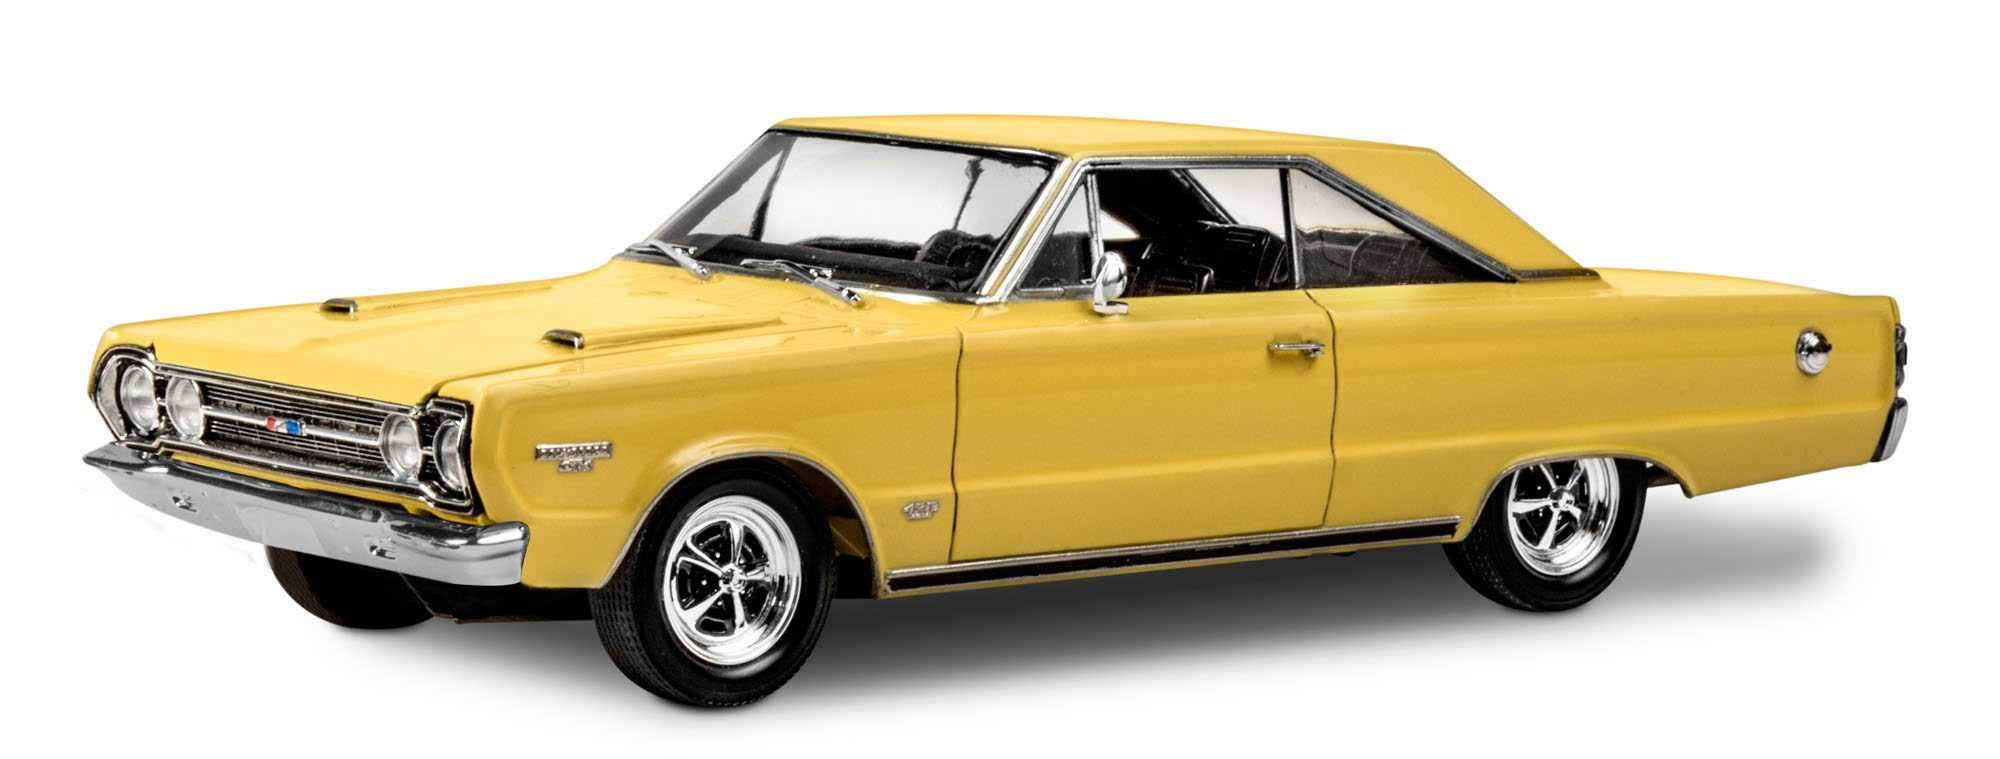 Revell 4481 1967 Plymouth GTX Model Car Kit